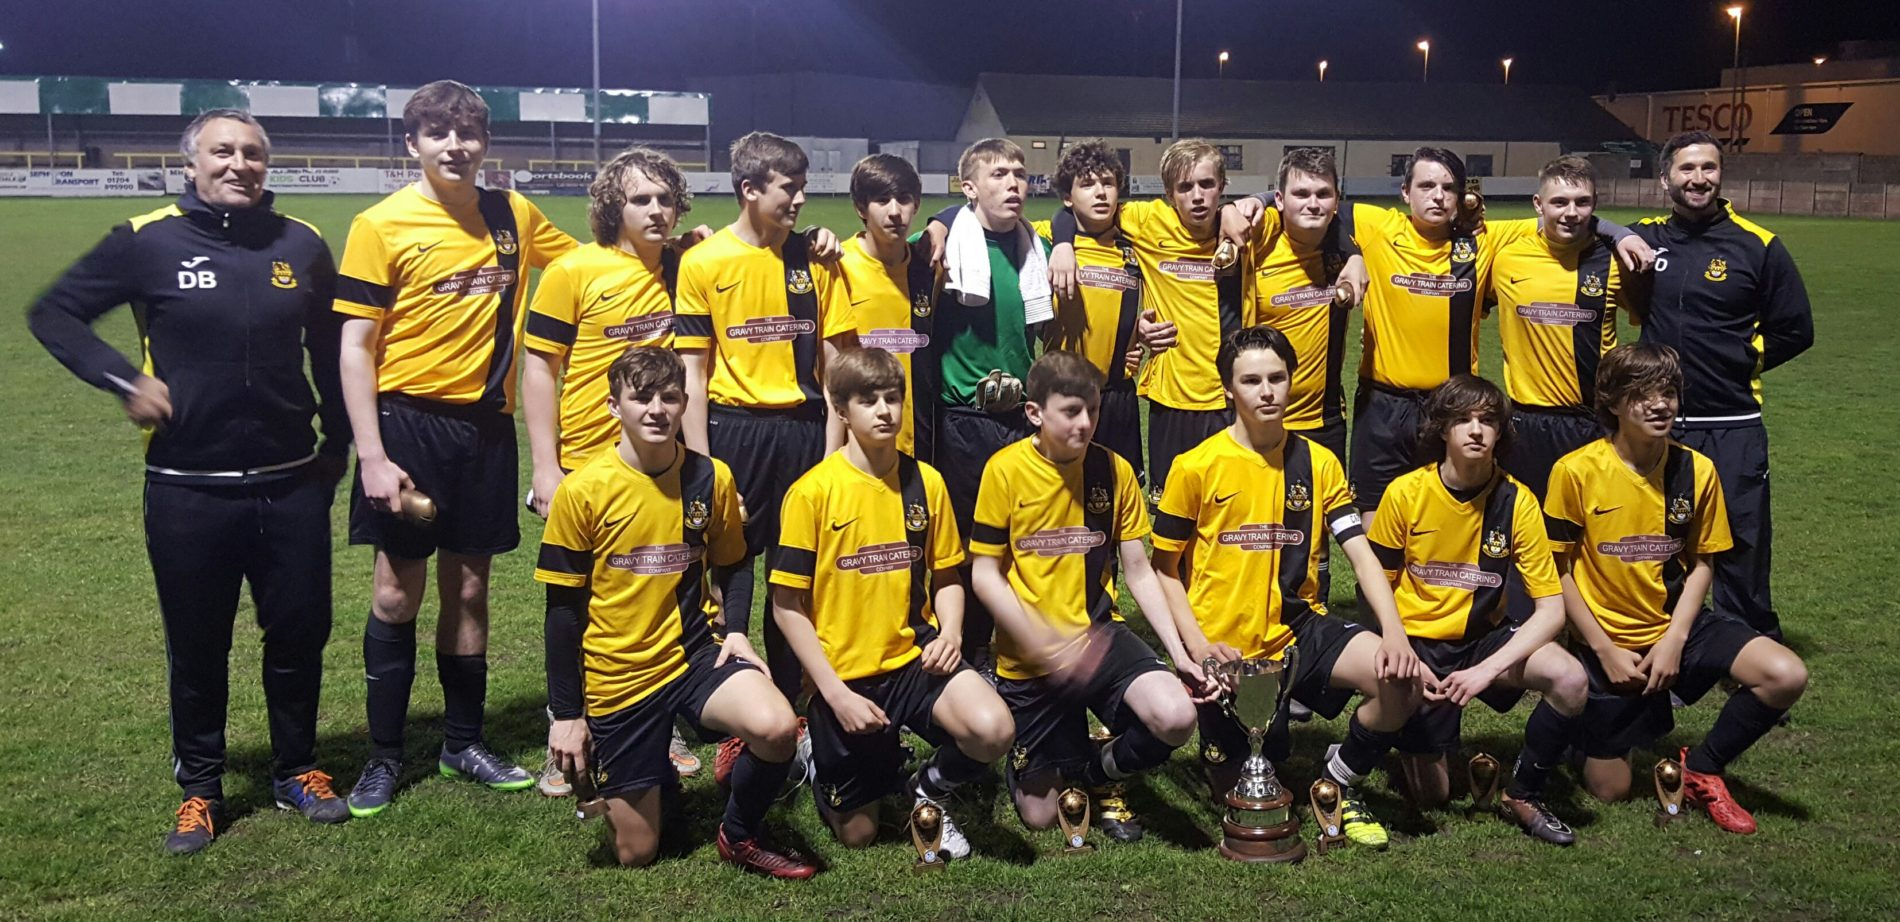 The Under 16s made it two cup final wins in two days for our Youth sides on Wednesday evening.         Tom Lineker and Dan Hudson were both on the scoresheet as the Sandgrounders secured a convincing 2-0 win over Southport & Ainsdale at Victoria Park, Burscough in the Craven Minor League Adam Bell...